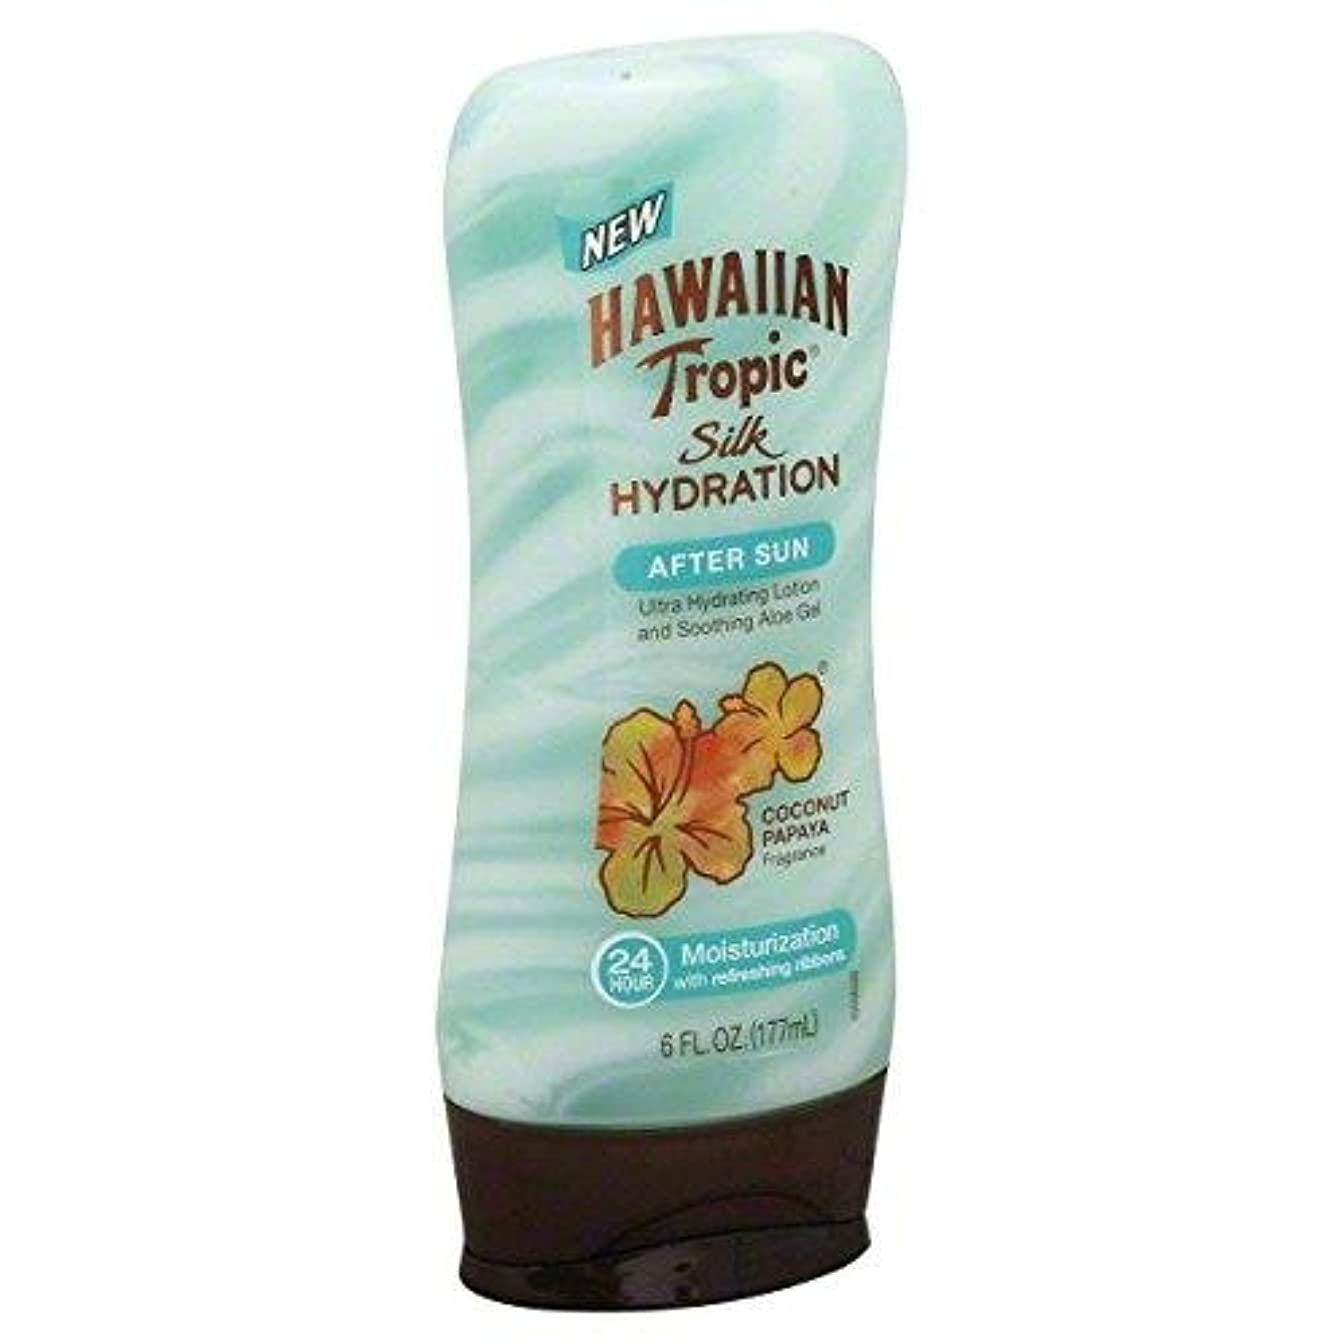 特別に表現豚海外直送品【日焼け後のクールダウン&保湿】Hawaiian Tropic Silk Hydration After Sun Ultra Hydrating Lotion & Soothing Aloe Gel, Coconut Papaya - 6 fl oz (177 ml)